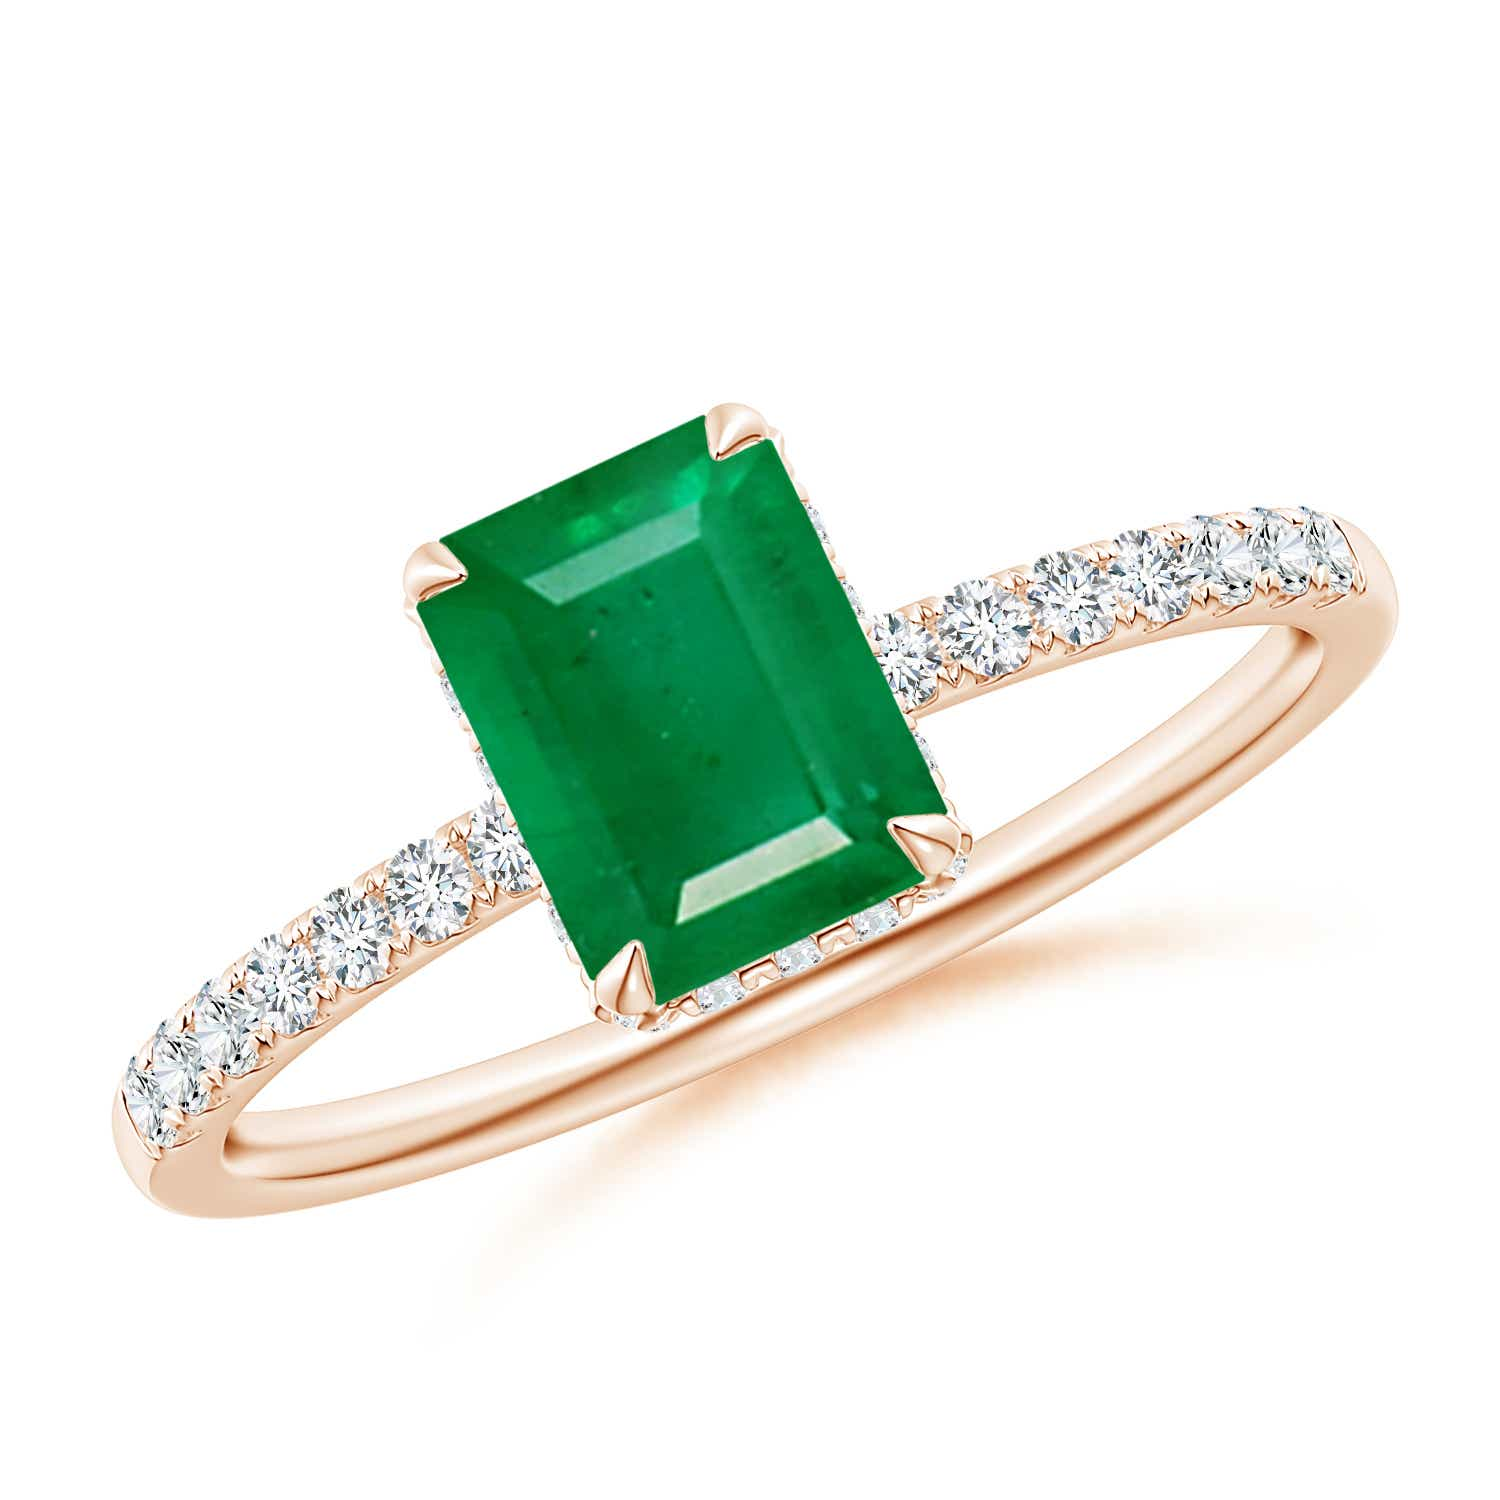 Emerald-Cut Emerald Engagement Ring with Diamonds